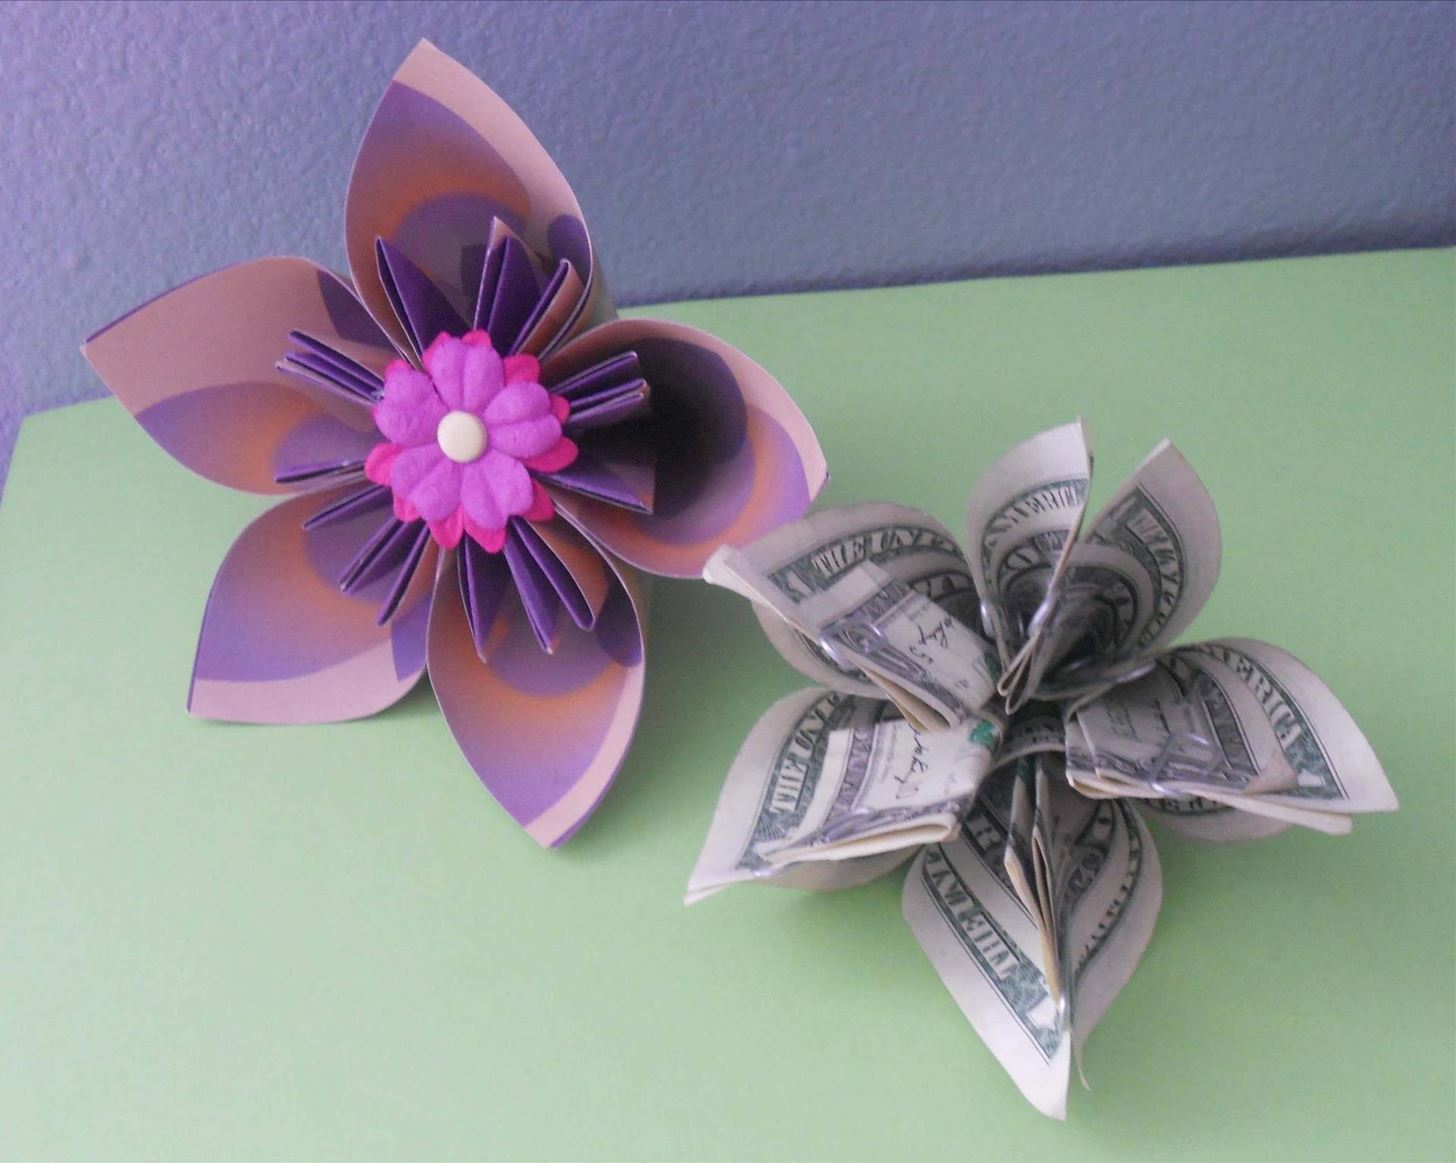 Money origami flower edition 10 different ways to fold a dollar image via tqn izmirmasajfo